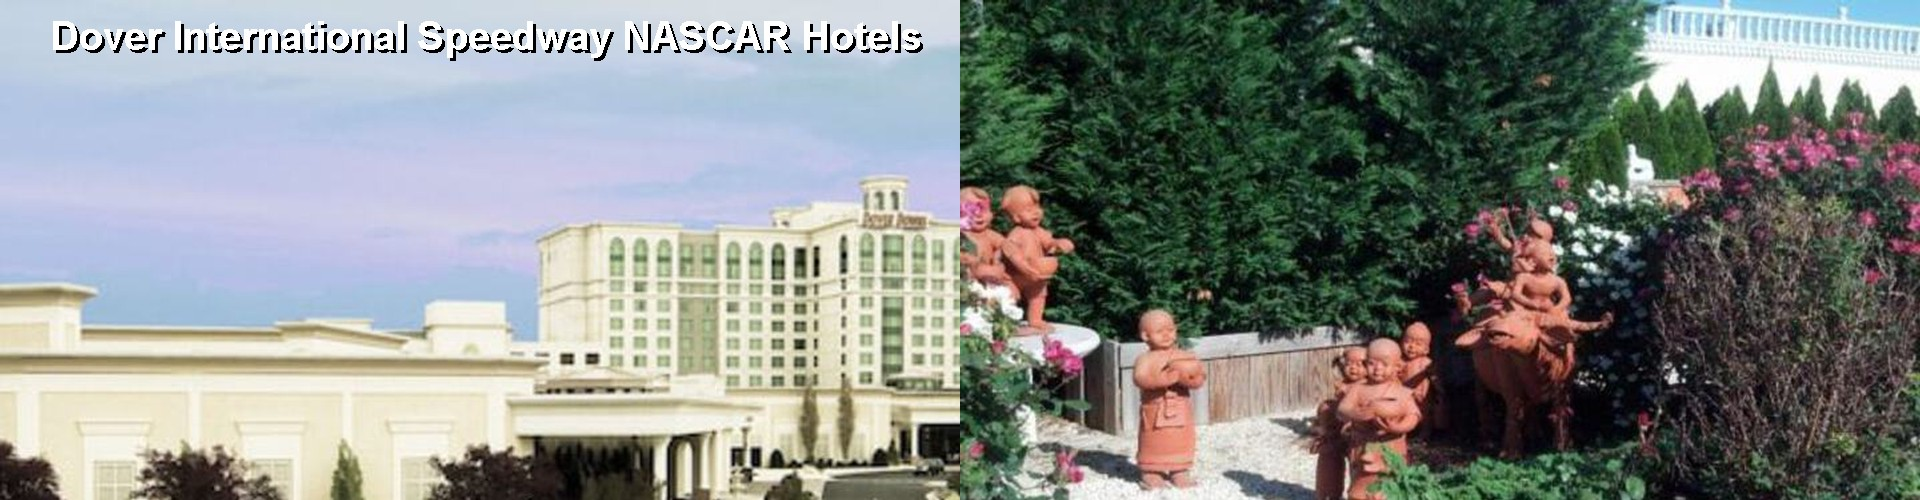 5 Best Hotels near Dover International Speedway